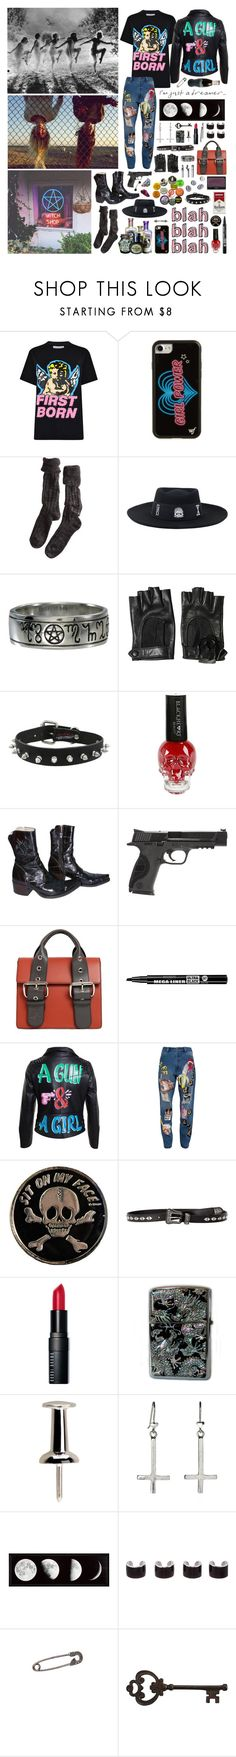 """""""They say I'm crazy, but you can understand me"""" by nothingisnormal ❤ liked on Polyvore featuring Ashley Williams, Wildflower, Polder, NARS Cosmetics, Salvatore Ferragamo, Hot Topic, Mexicana, Smith & Wesson, Vivienne Westwood and Bourjois"""